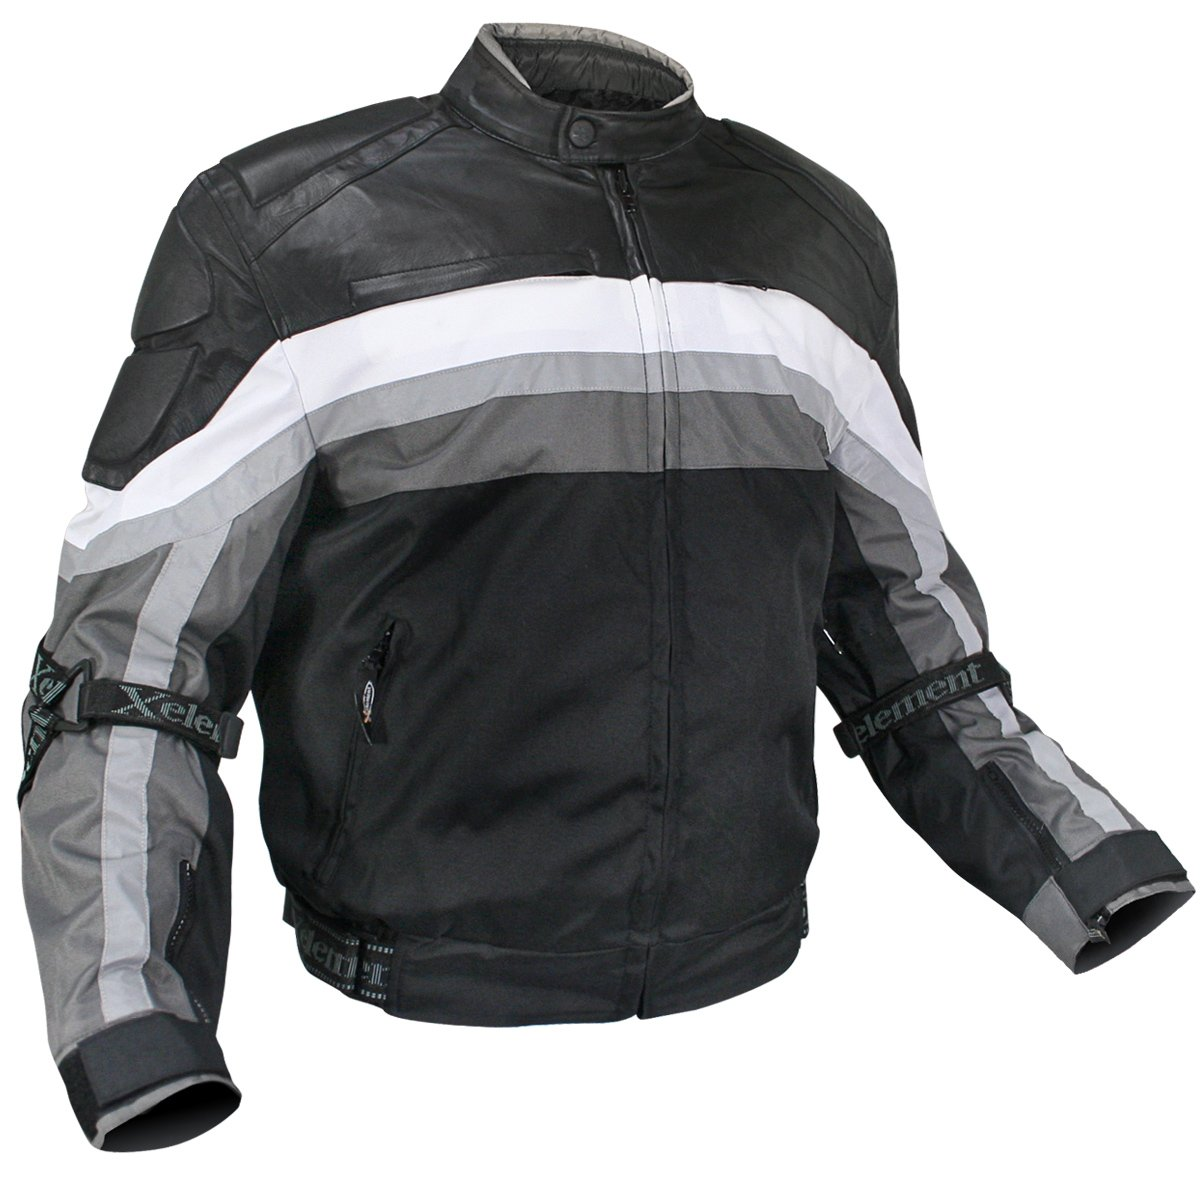 Amazon.com: Mens Armored Black and Grey Tri-Tex Fabric and Leather Trim Jacket with Level-3 Advanced Armor and Kevlar Protection - Size : Large: Automotive